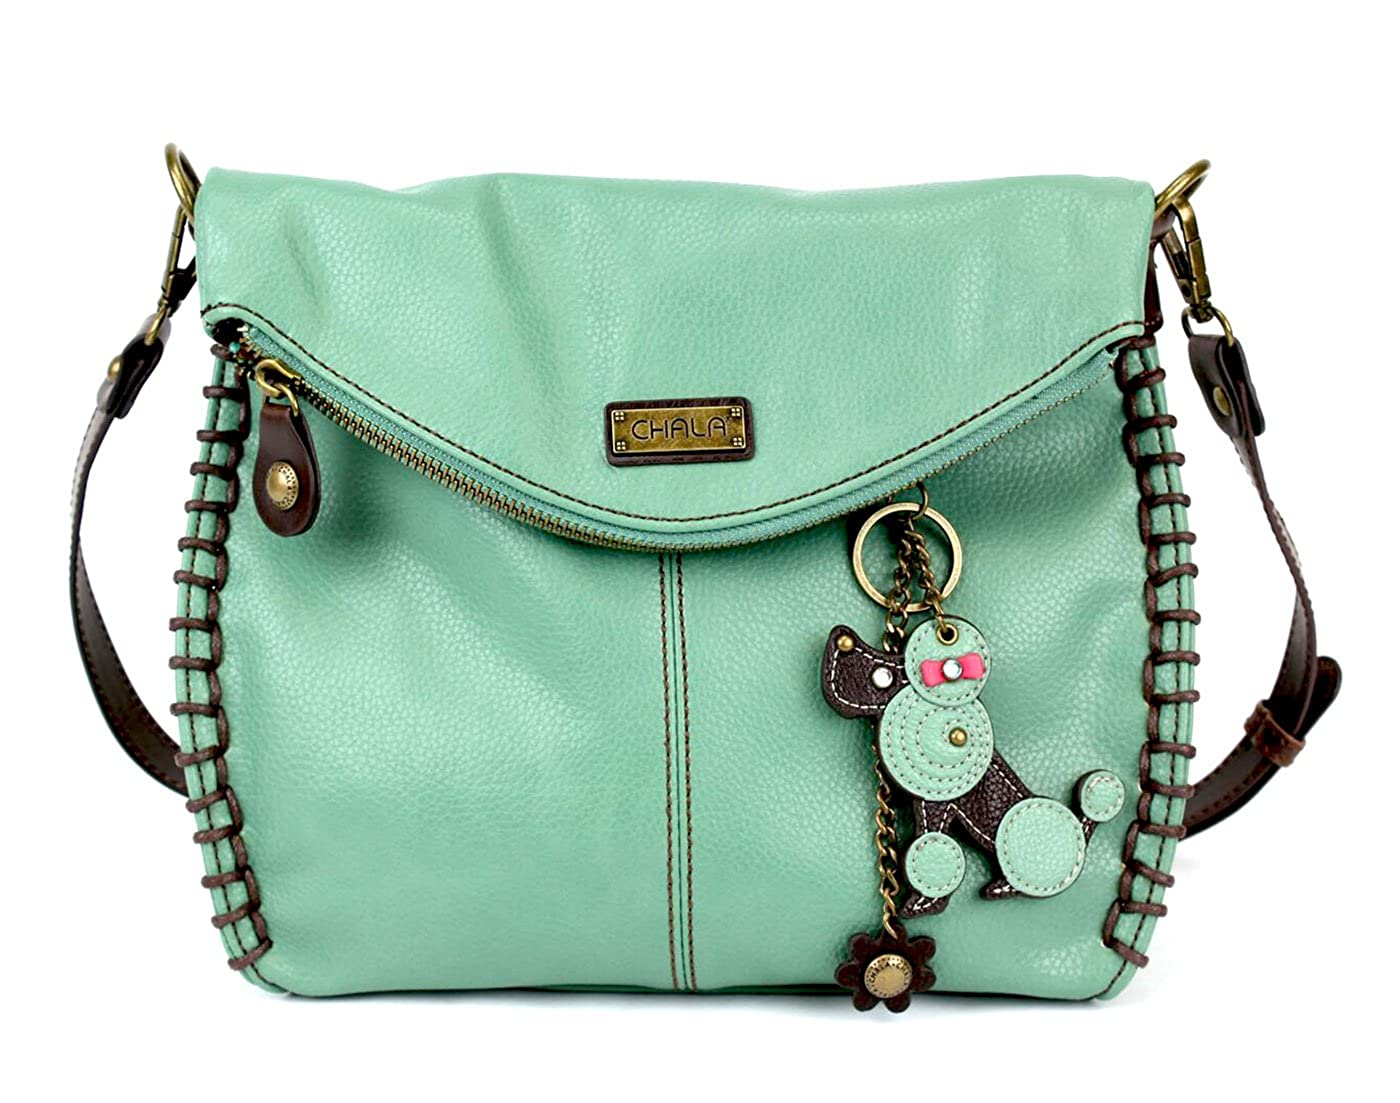 3387efc4e32d Amazon.com  Chala Charming Crossbody Bag With Flap Top